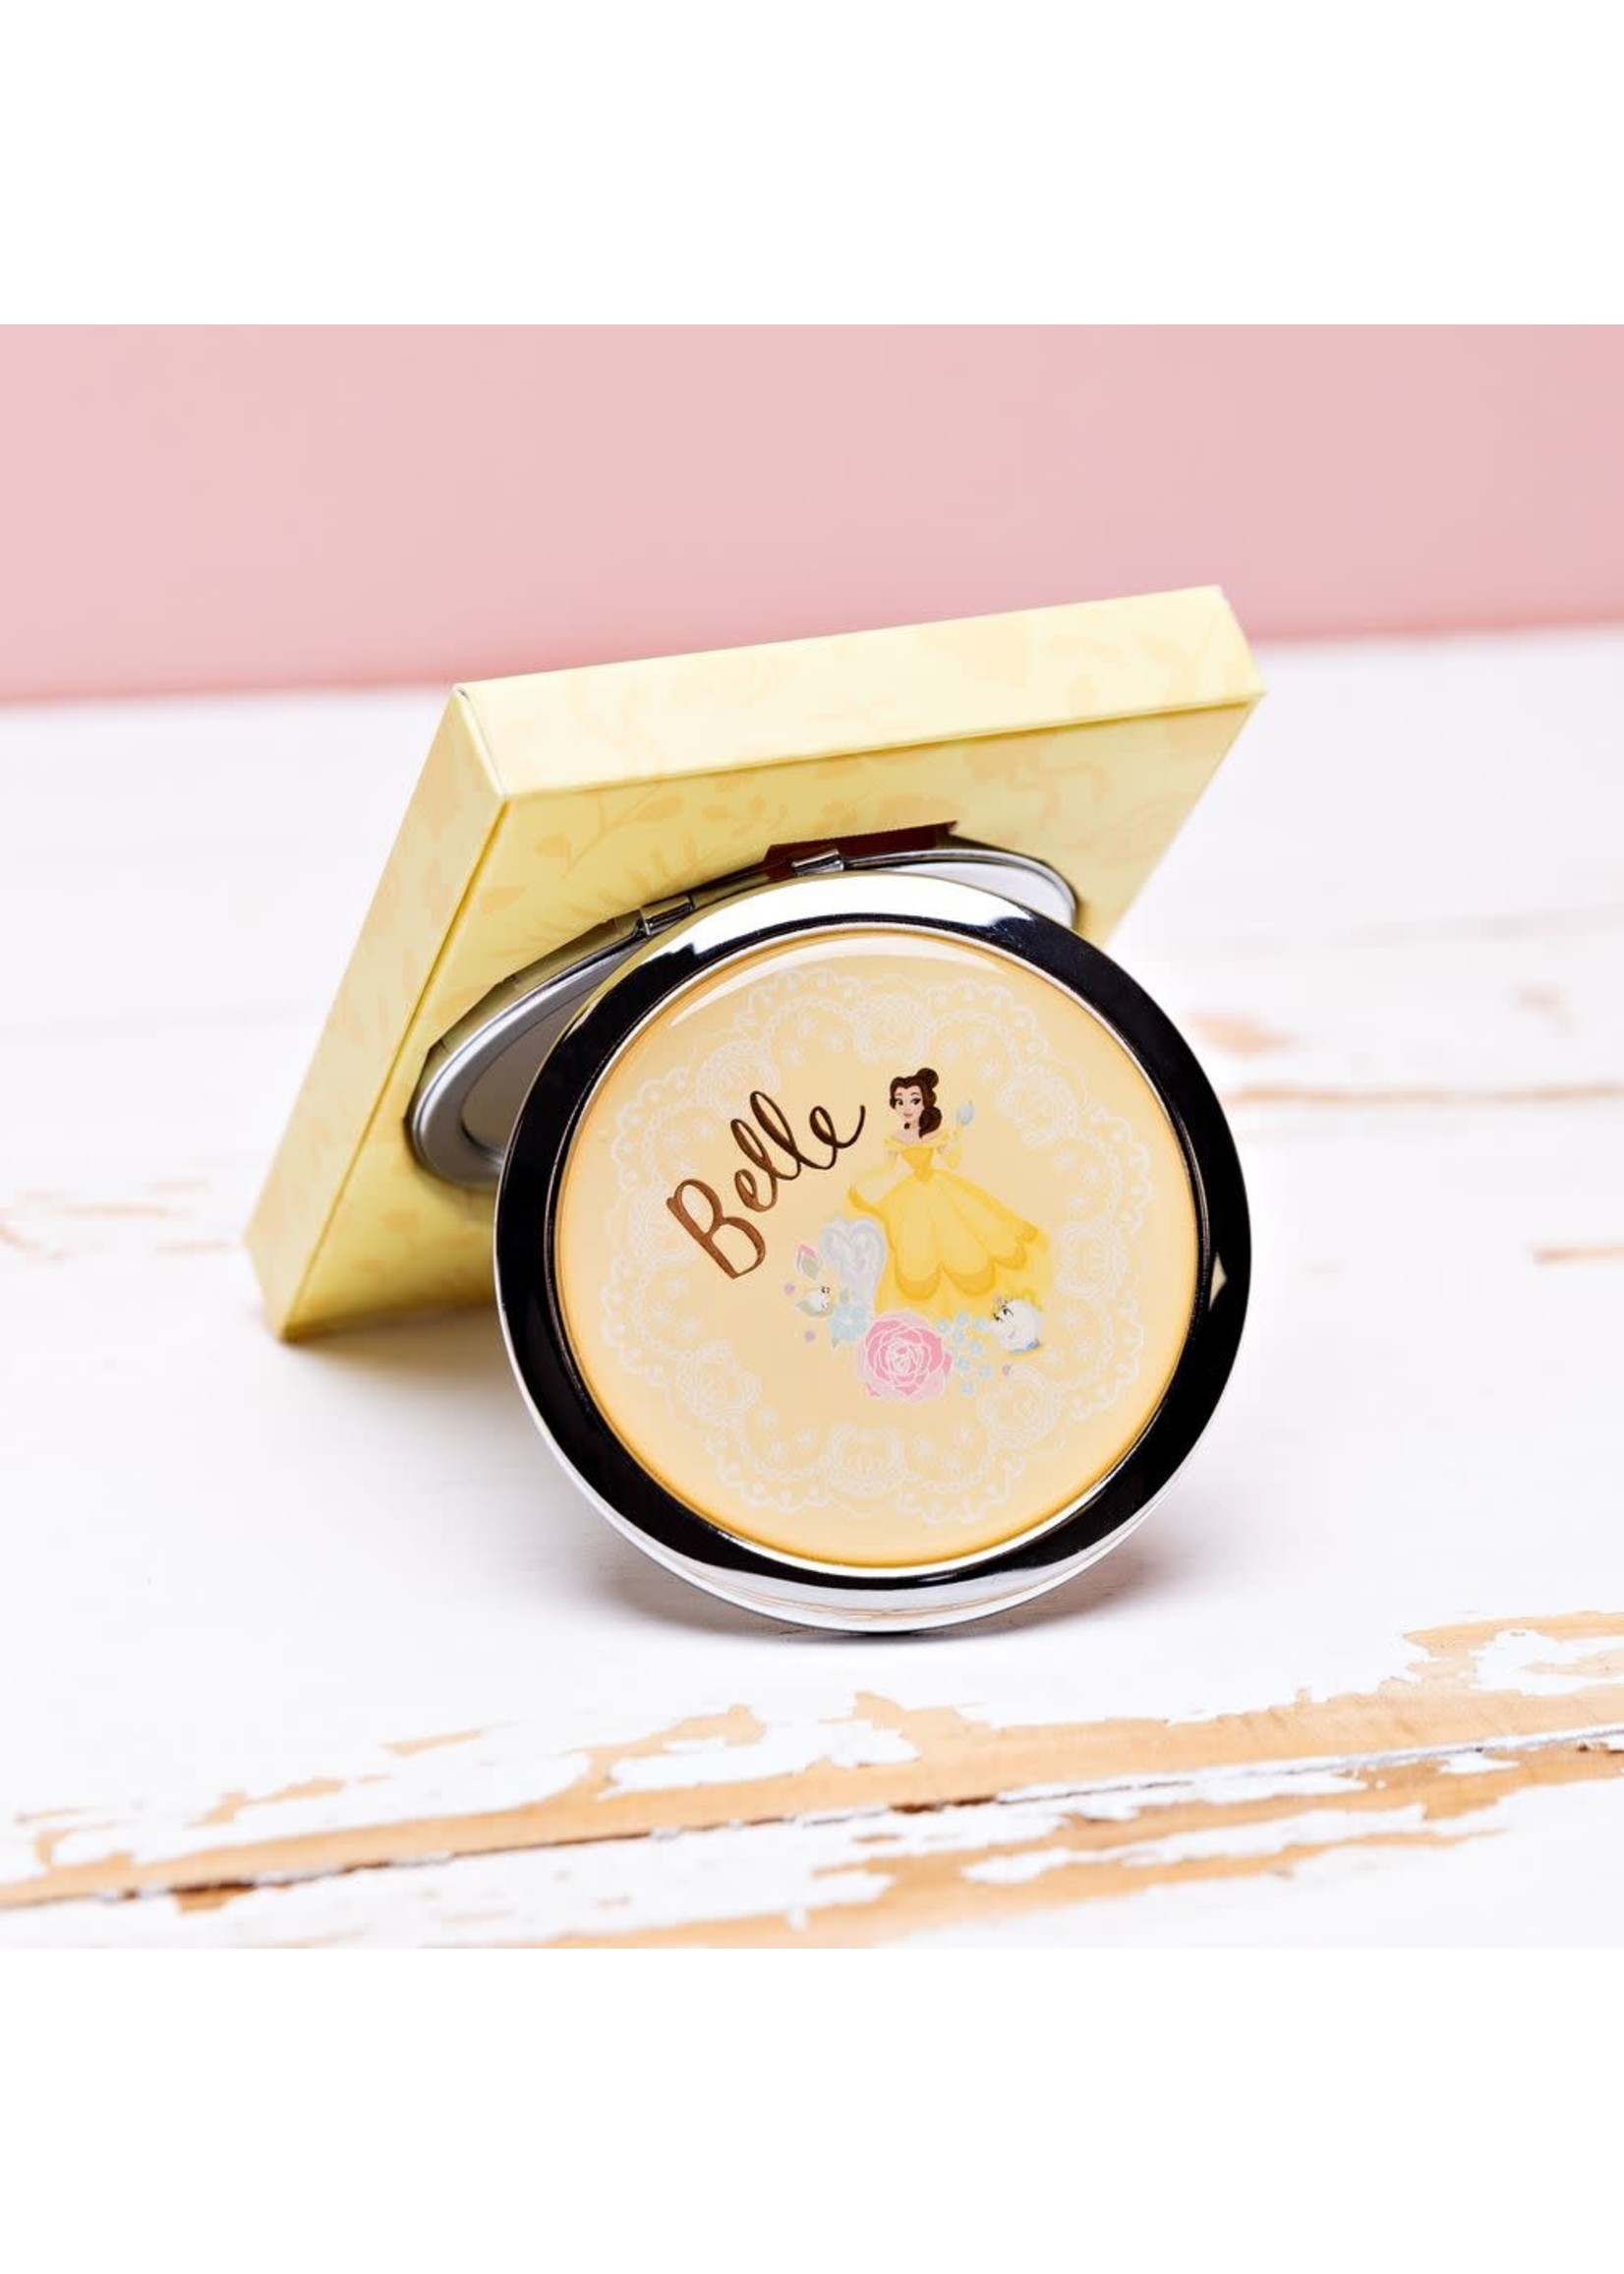 DISNEY BEAUTY & THE BEAST GOLD FOIL EMBOSSED COMPACT MIRROR